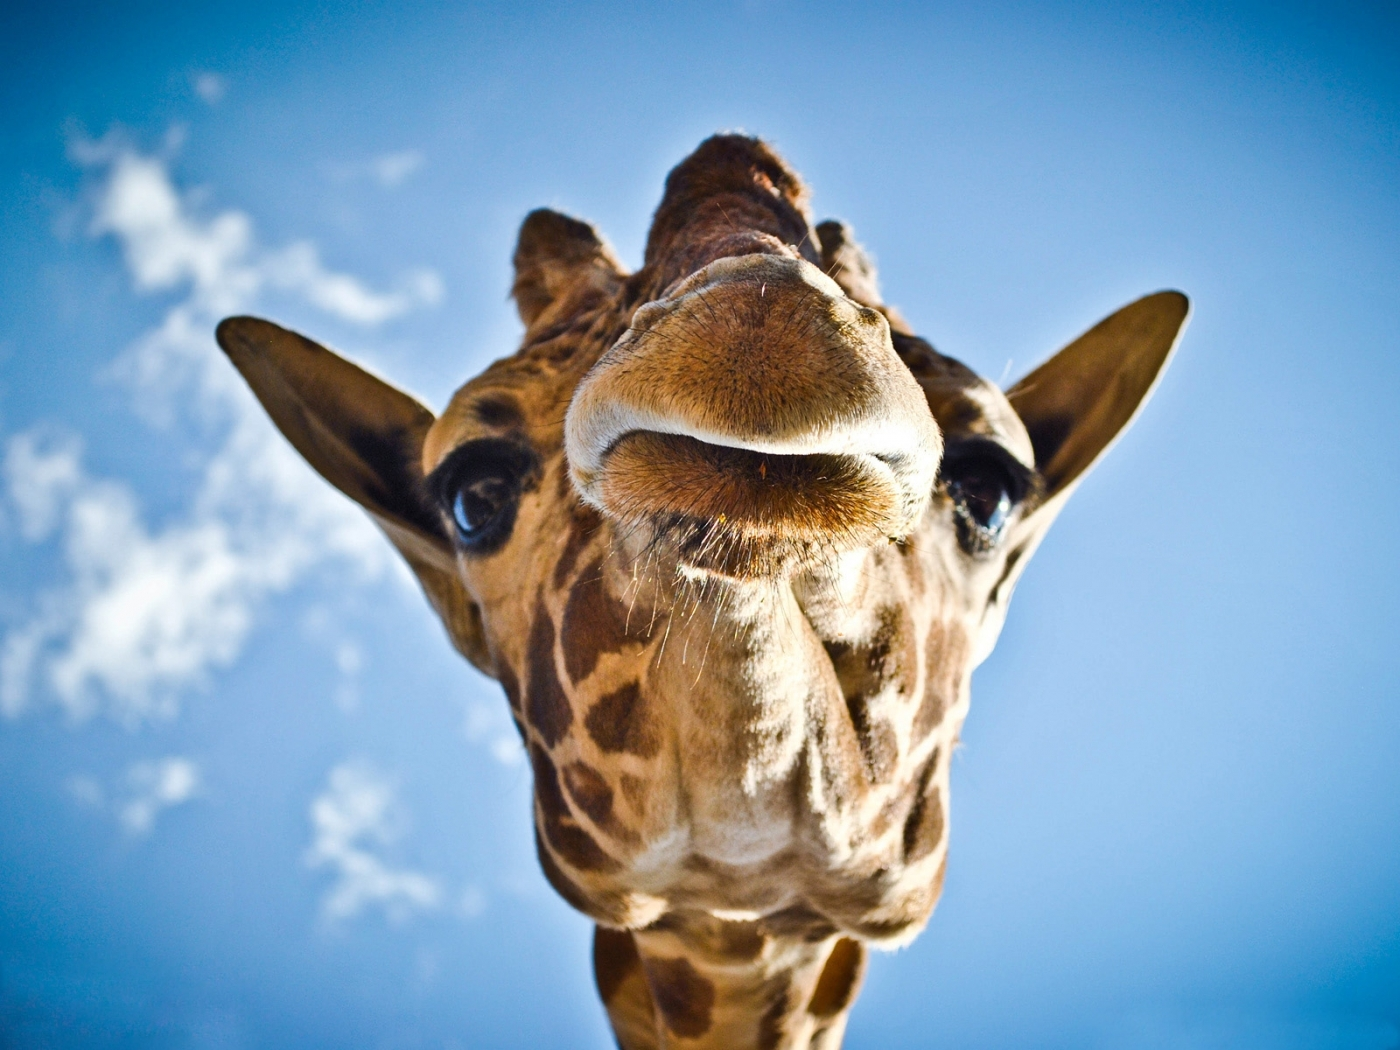 50231 download wallpaper Animals, Giraffes screensavers and pictures for free